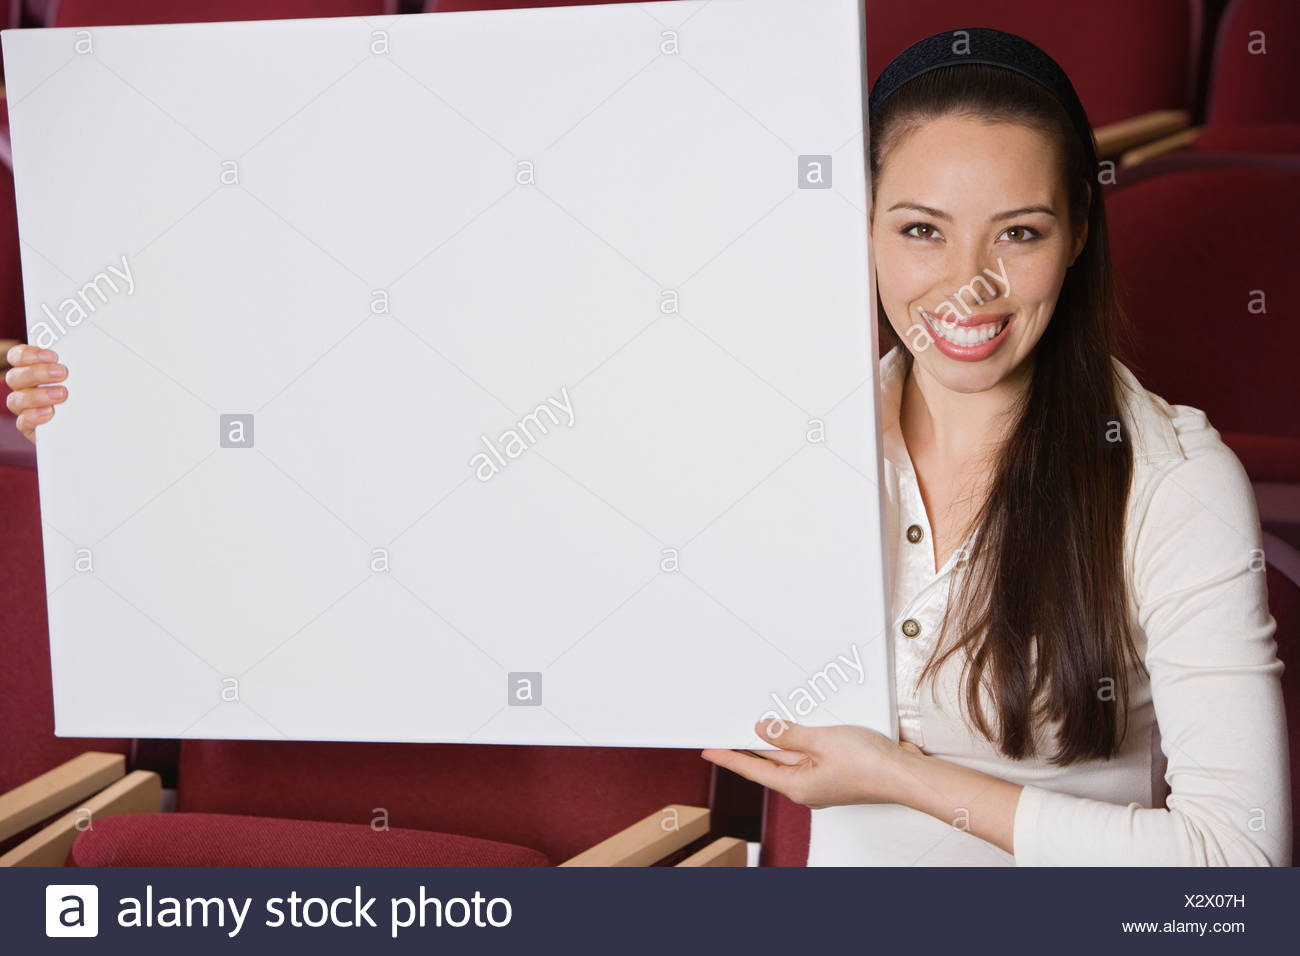 Woman sitting in auditorium, holding empty placard - Stock Image